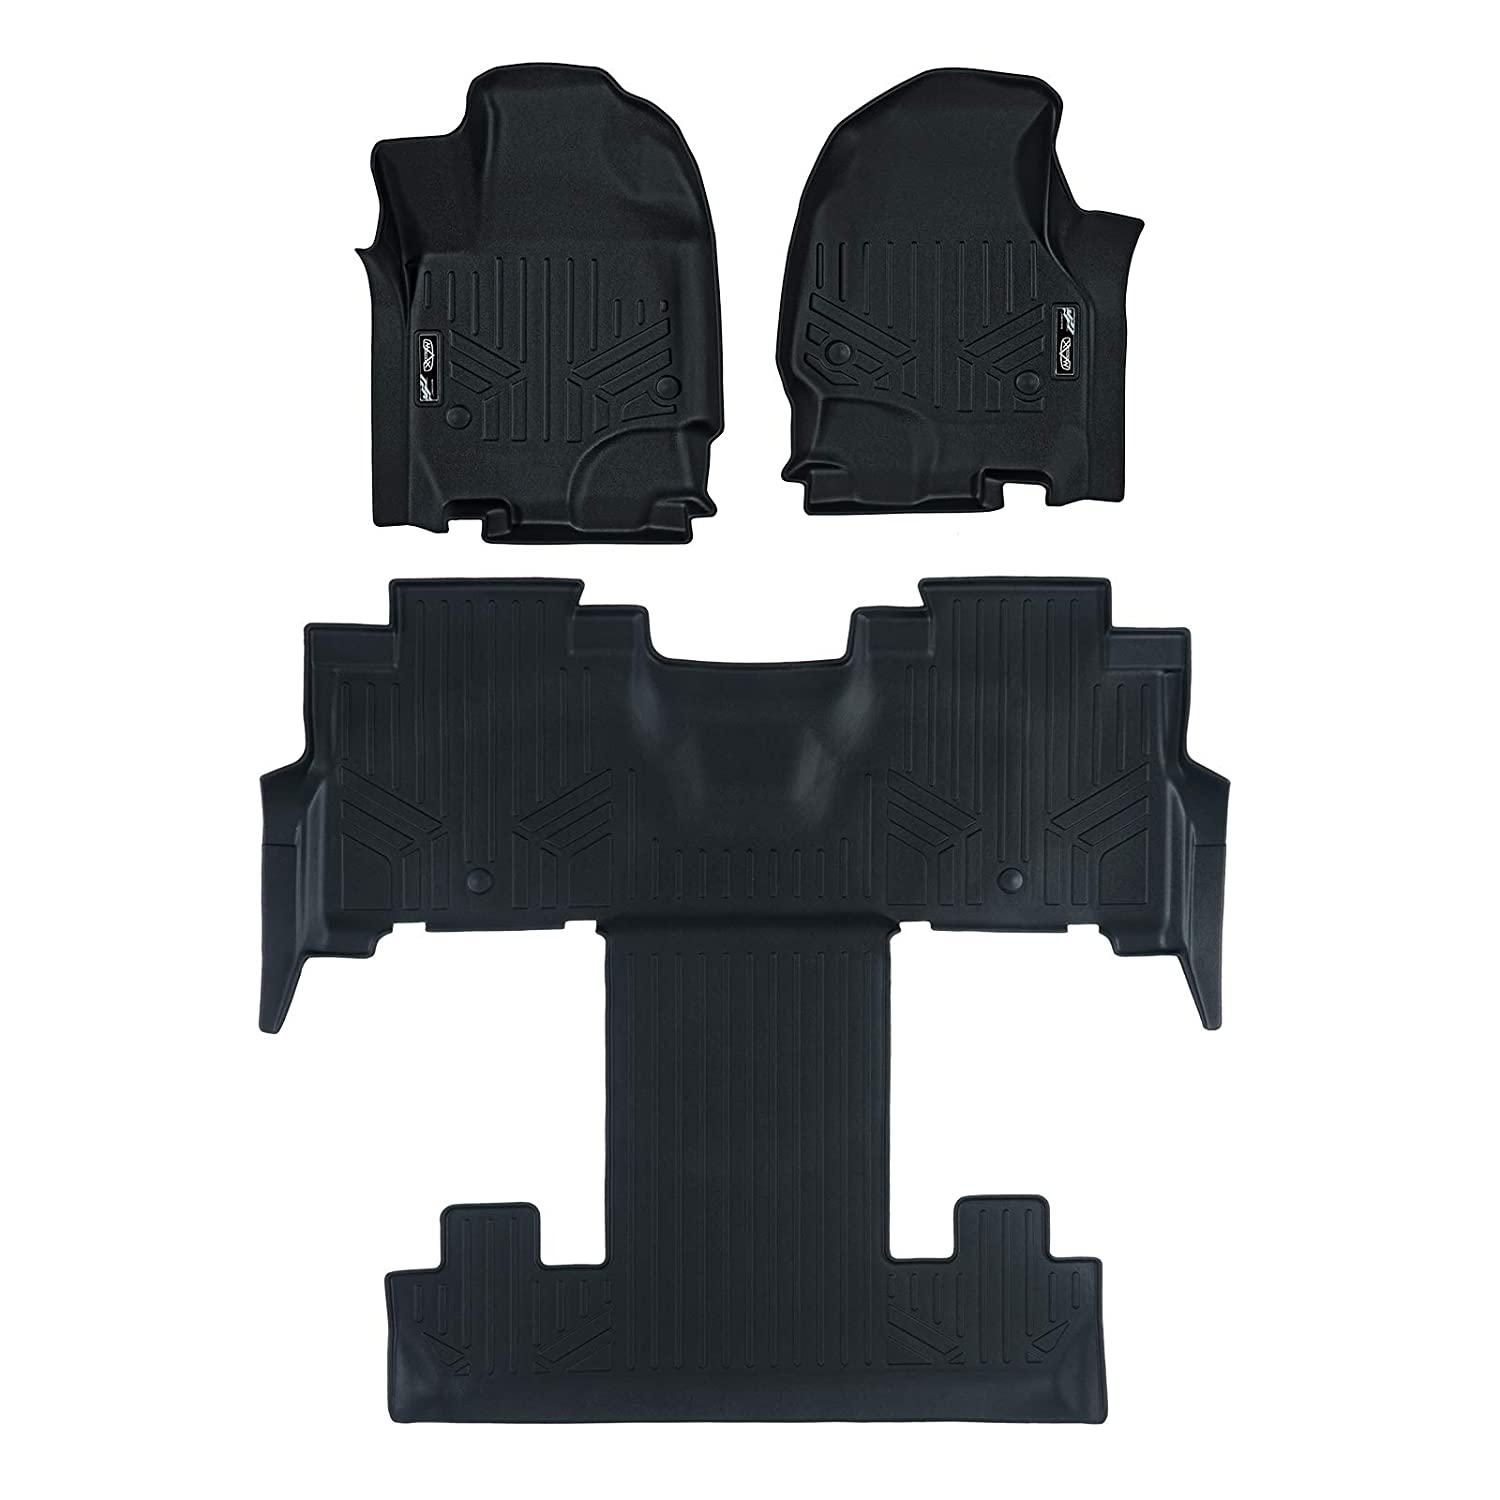 MAX LINER A0350//B0350 Floor Mats 3 Liner Set Black for 2018-2019 Expedition//Navigator with 2nd Row Bucket Seats Incl. Max and L